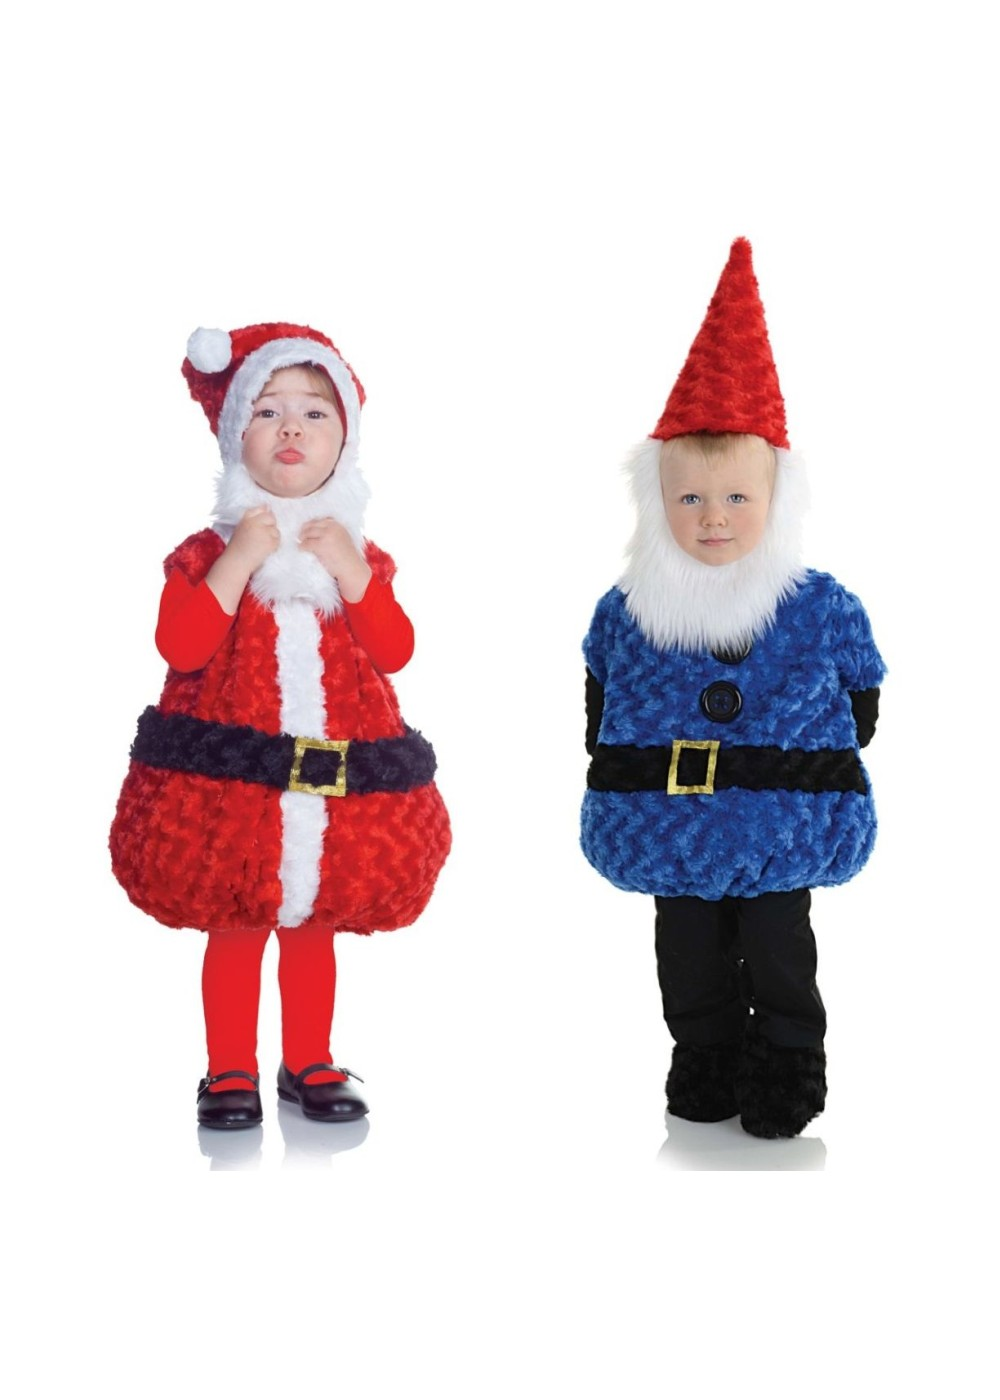 Christmas Gnome.Christmas Gnome And Santa Claus Toddler Boys Costumes Christmas Costumes